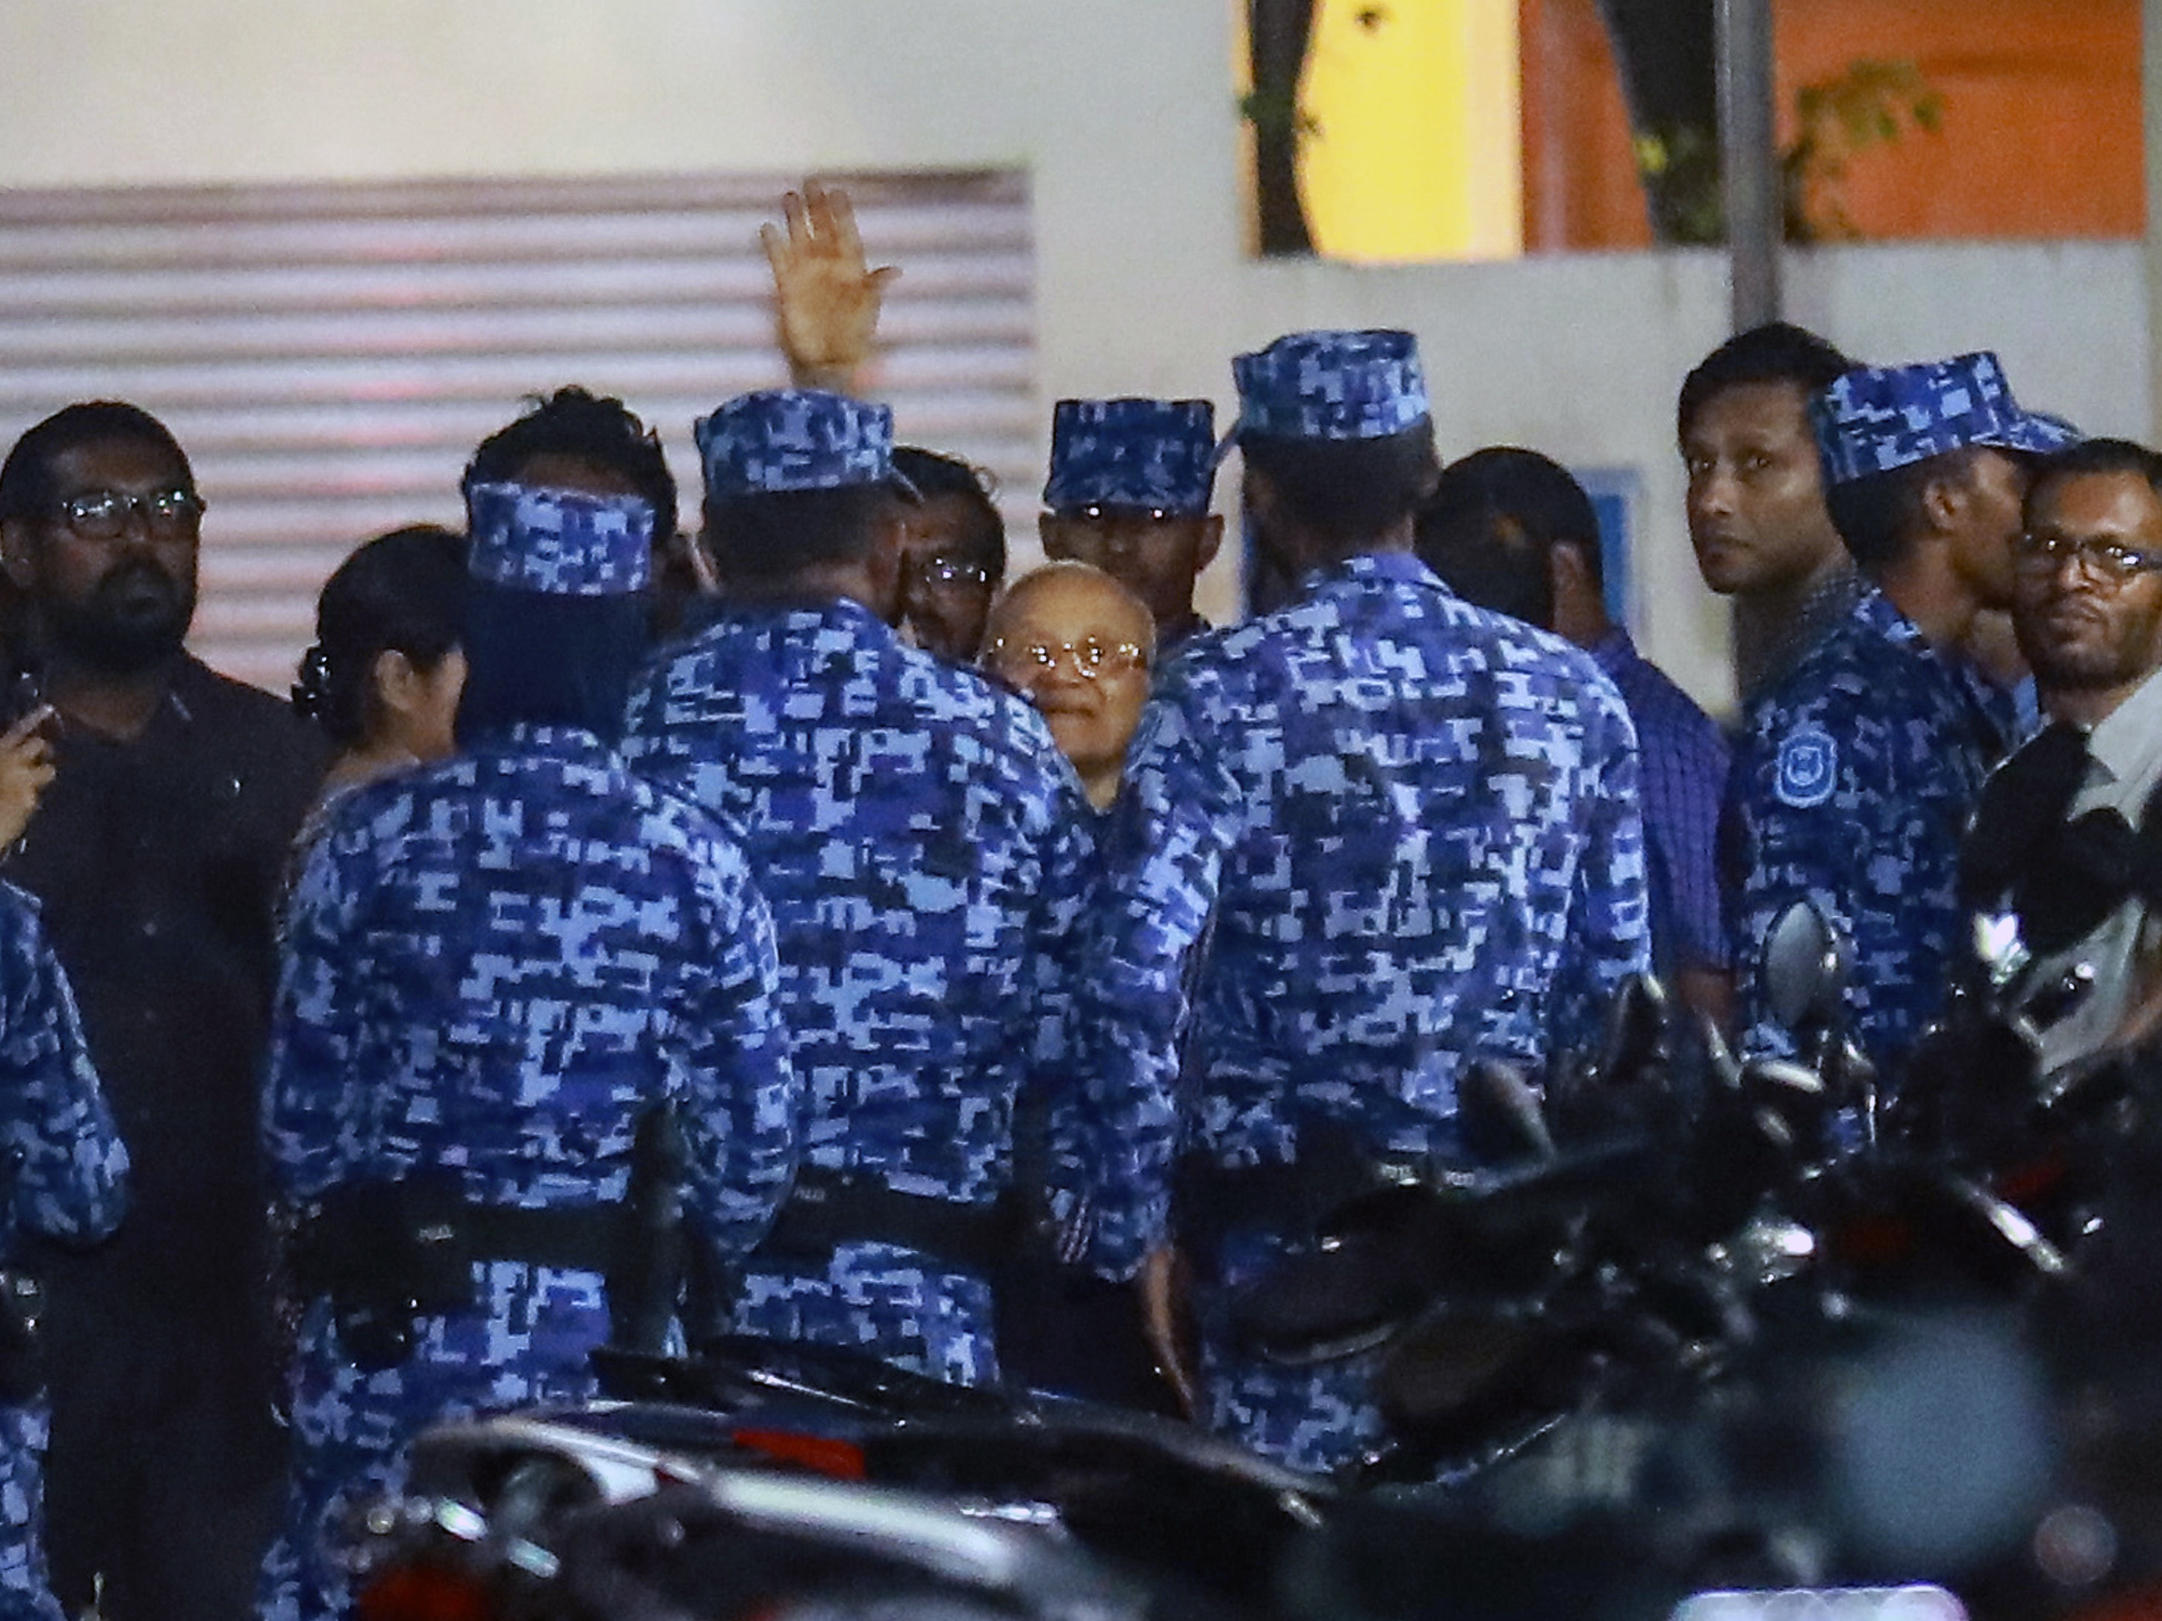 State of emergency declared in Maldives as opposition…